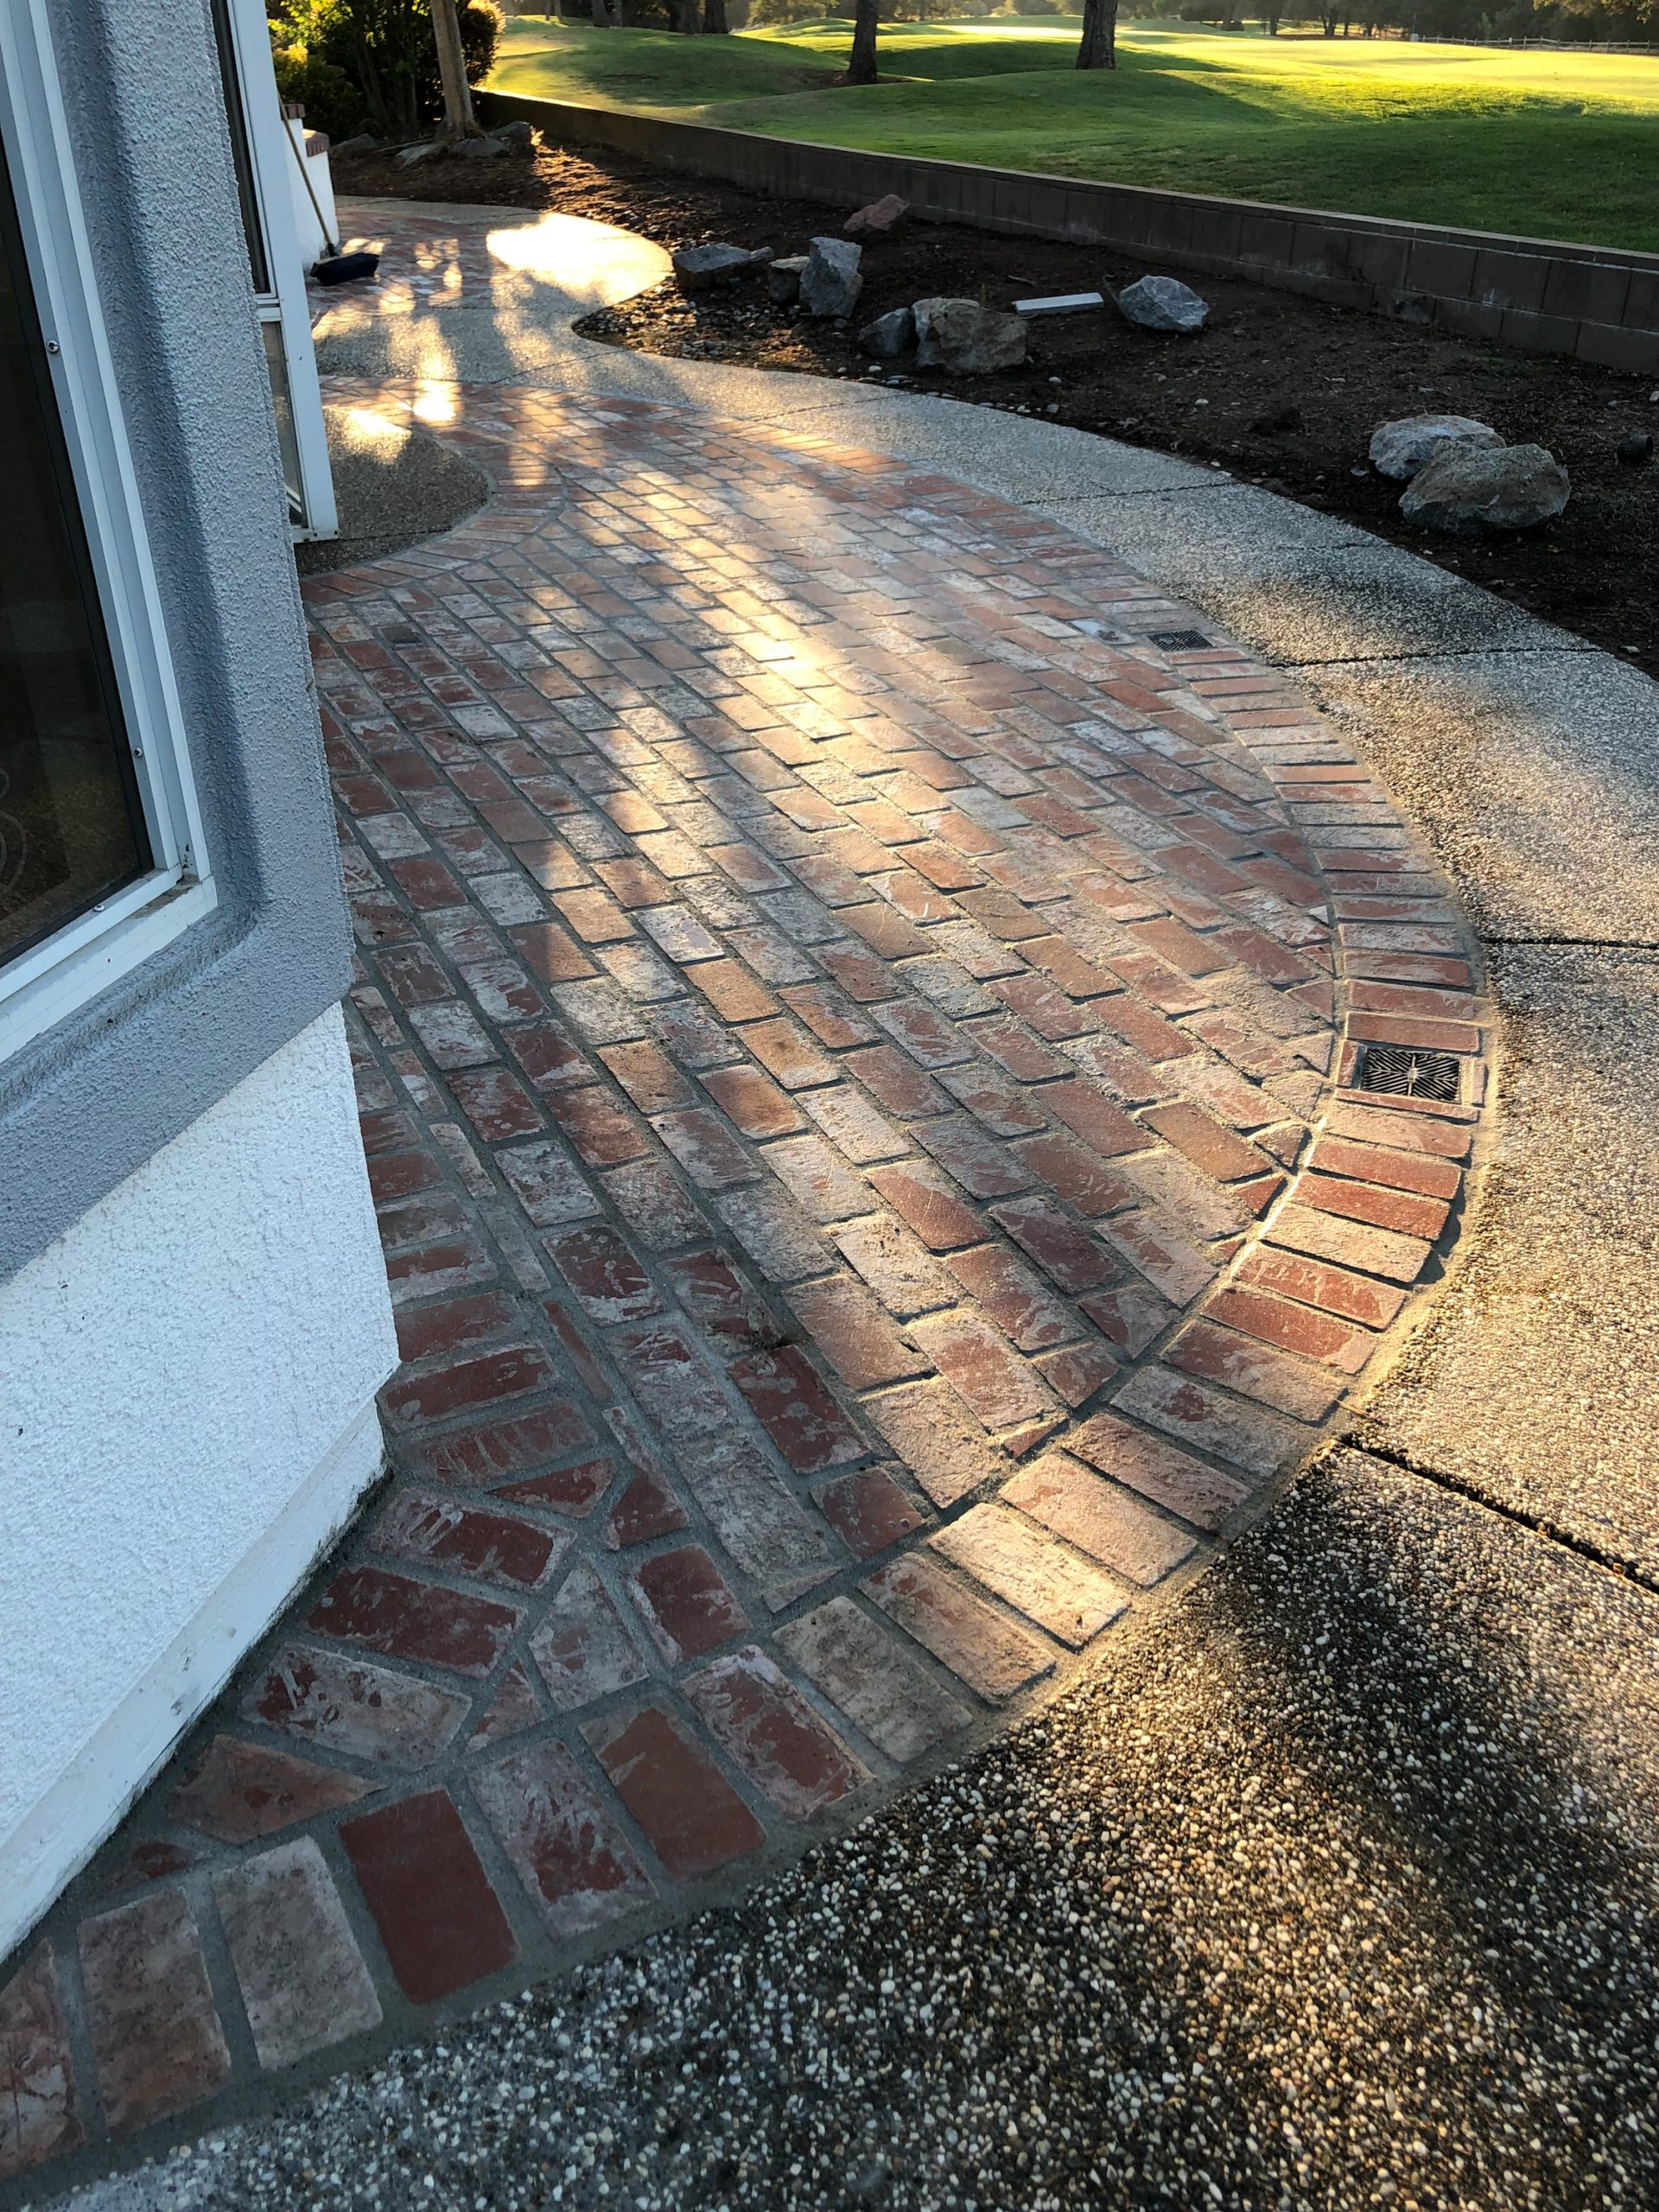 this image shows a brick masonry pleasanton project recently